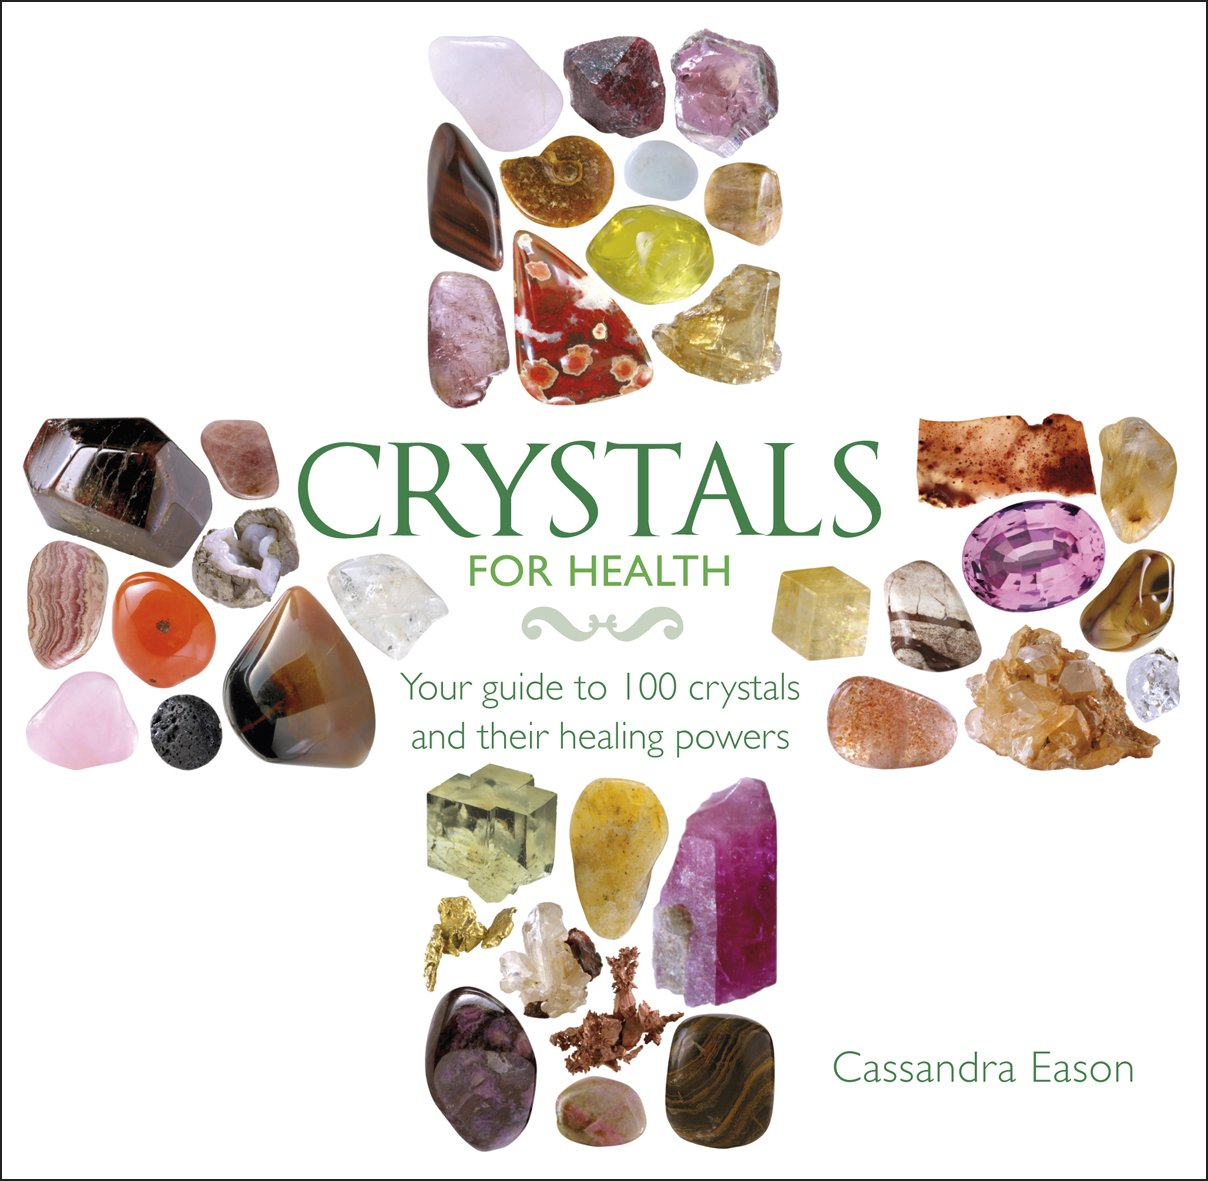 Crystals for Health: Your Guide to 100 Crystals and Their Healing Powers PDF